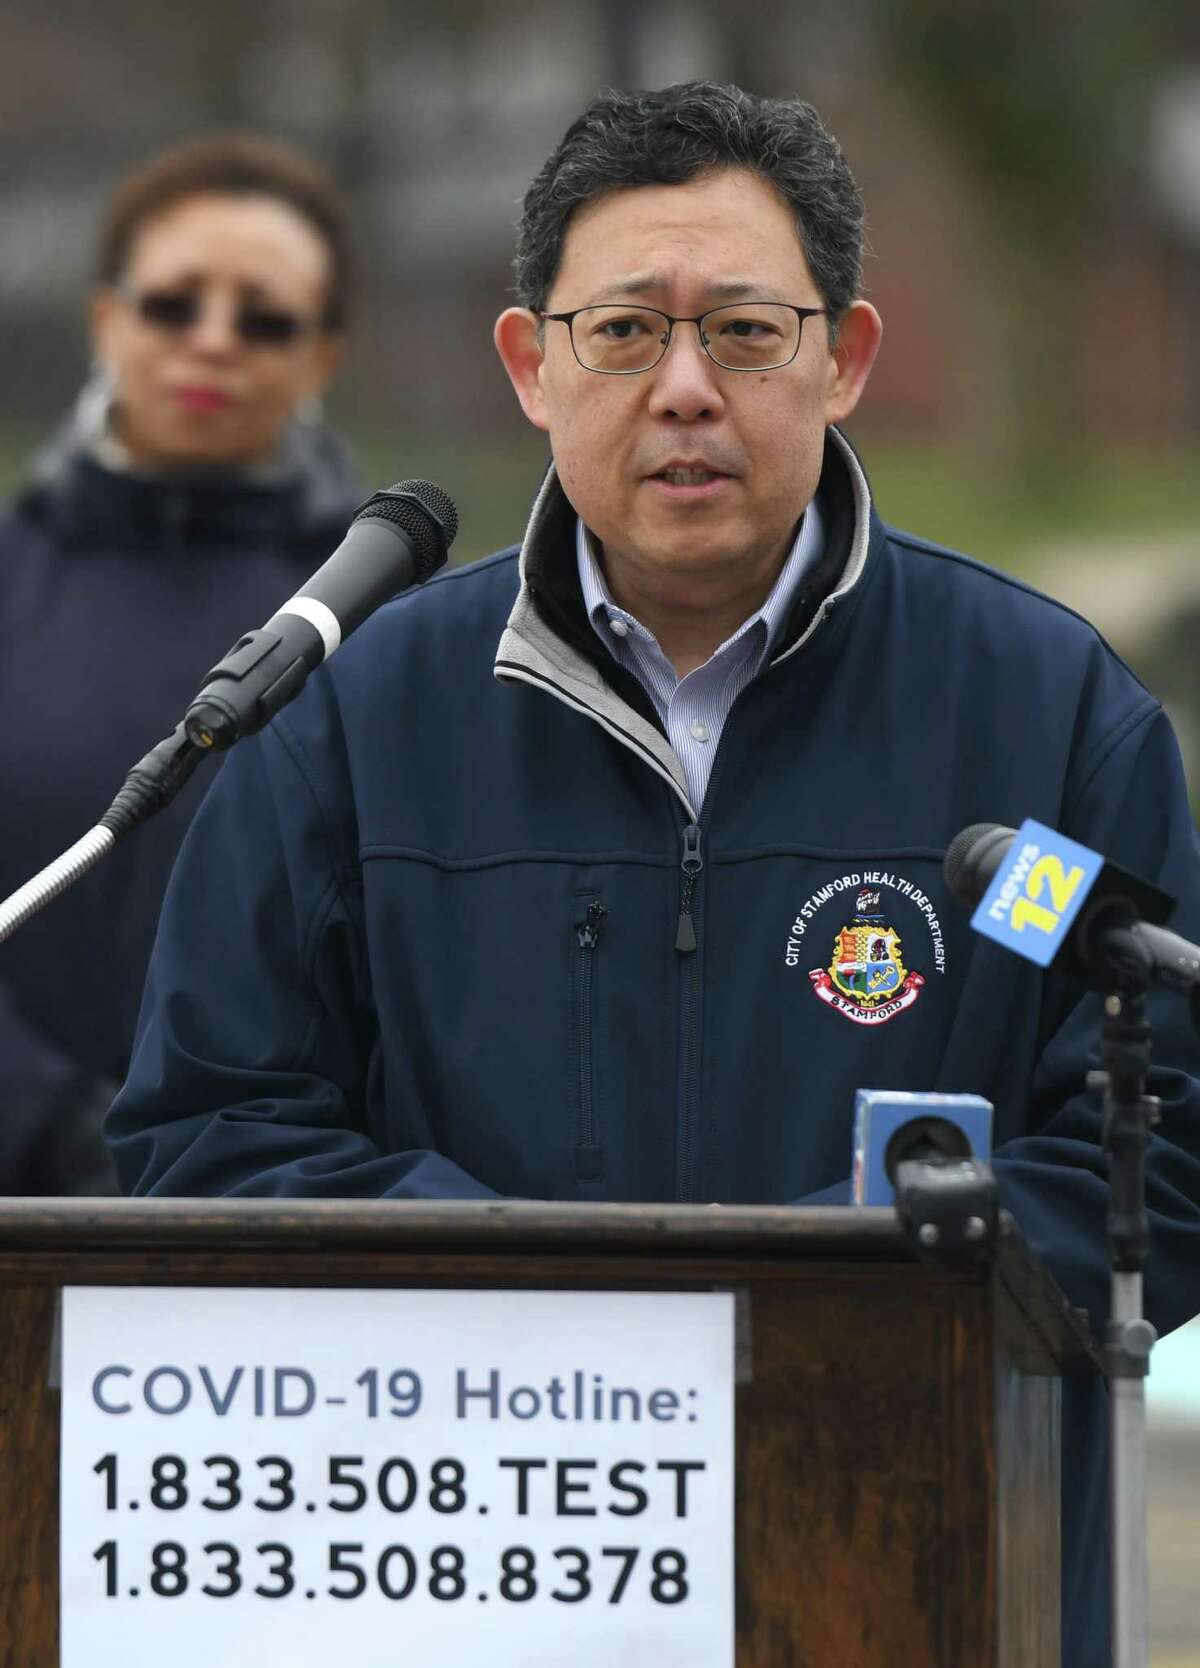 City of Stamford Medical Advisor Dr. Henry Yoon speaks about the coronavirus situation at Westhill High School in Stamford, Conn. Monday, March 30, 2020.